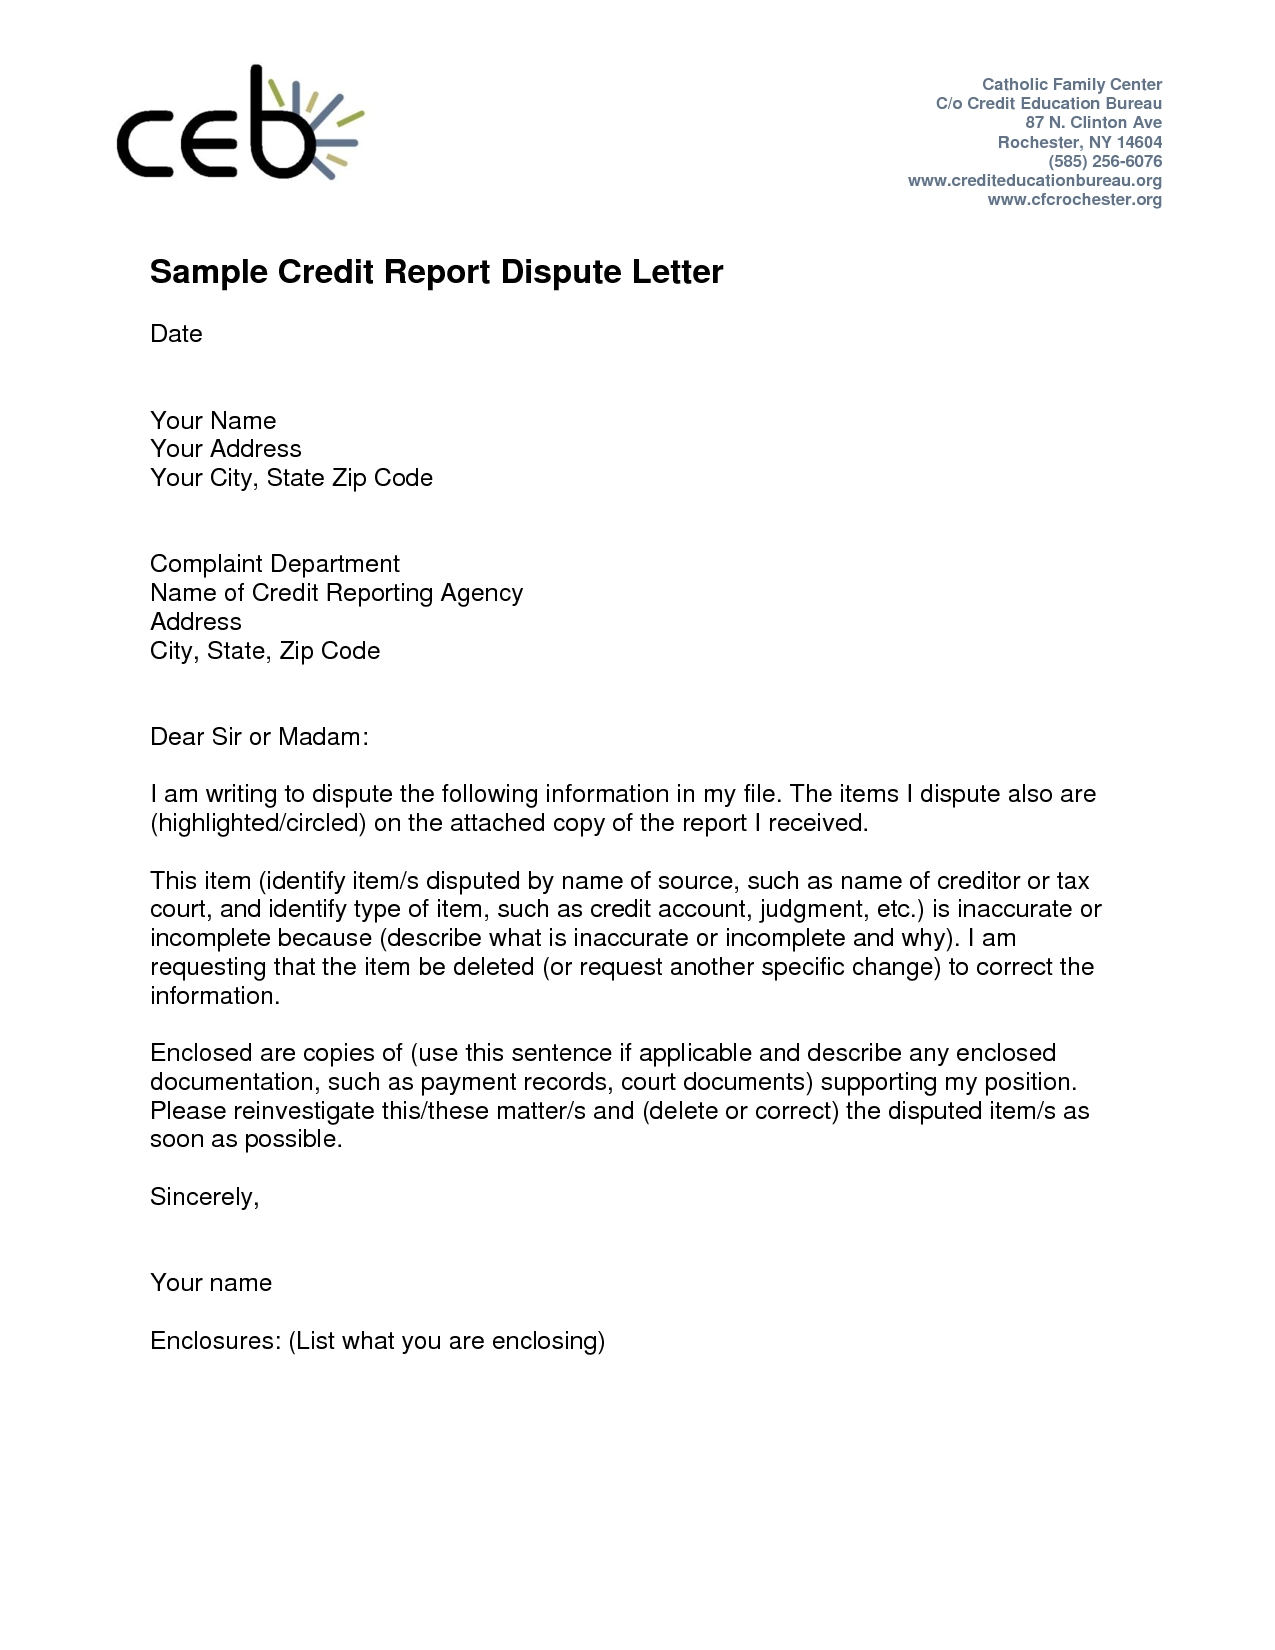 Credit Card Settlement Letter Template - Credit Dispute Letter Templates Acurnamedia